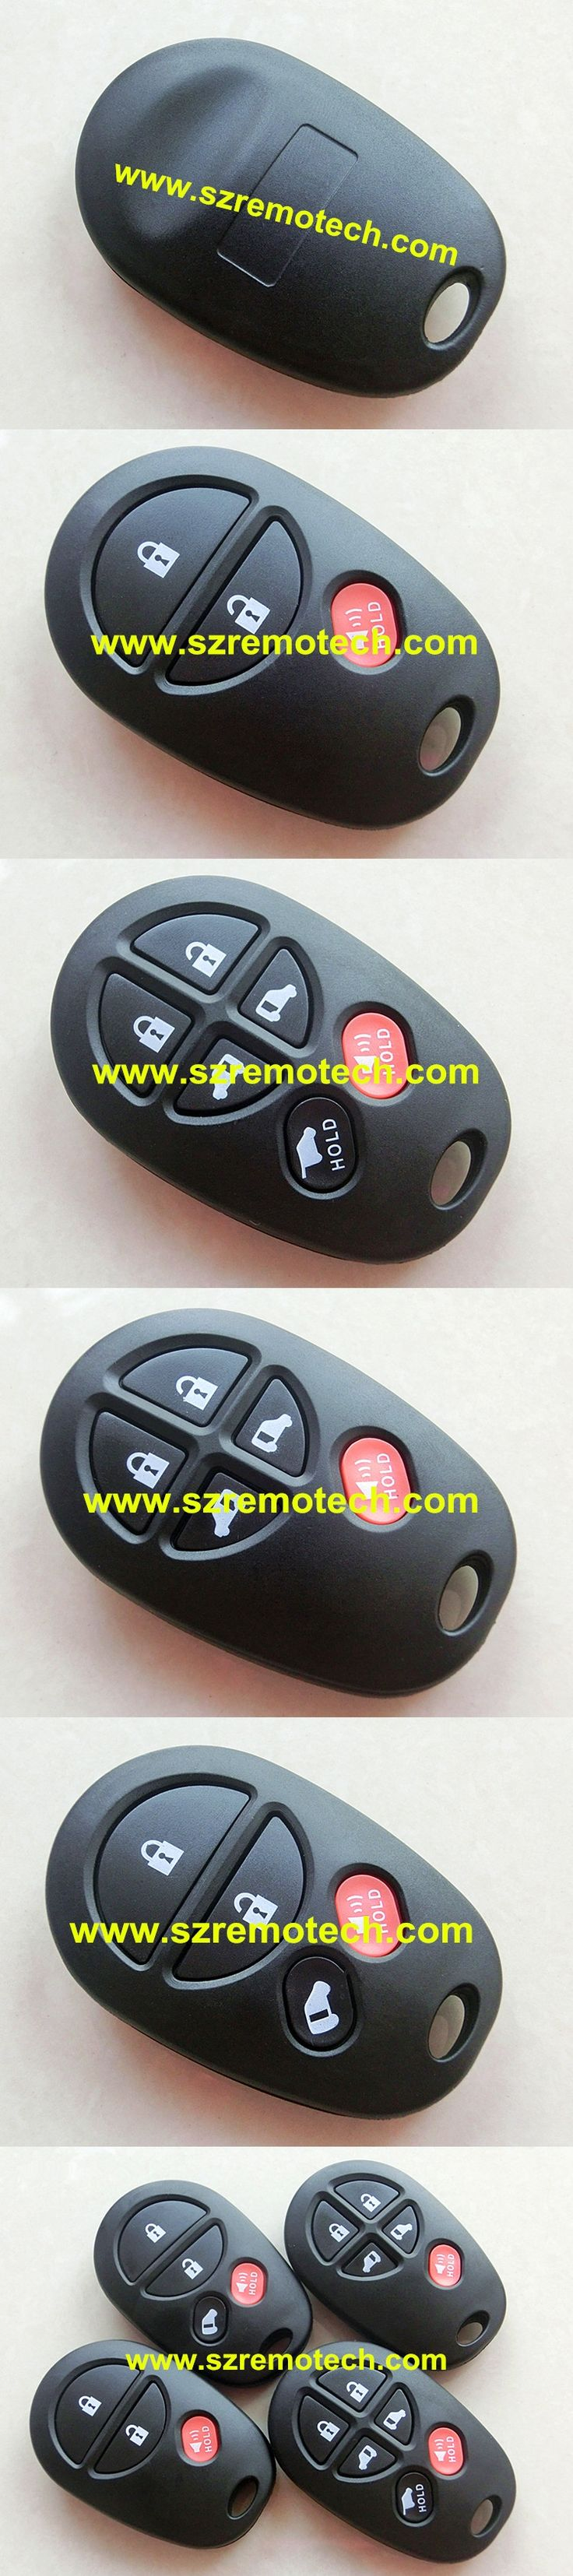 RMLKS Replacement 3 4 5 6 Buttons Remote Car Key Shell Fit For Toyota Camry 2007 Rav4 Auris With Pads